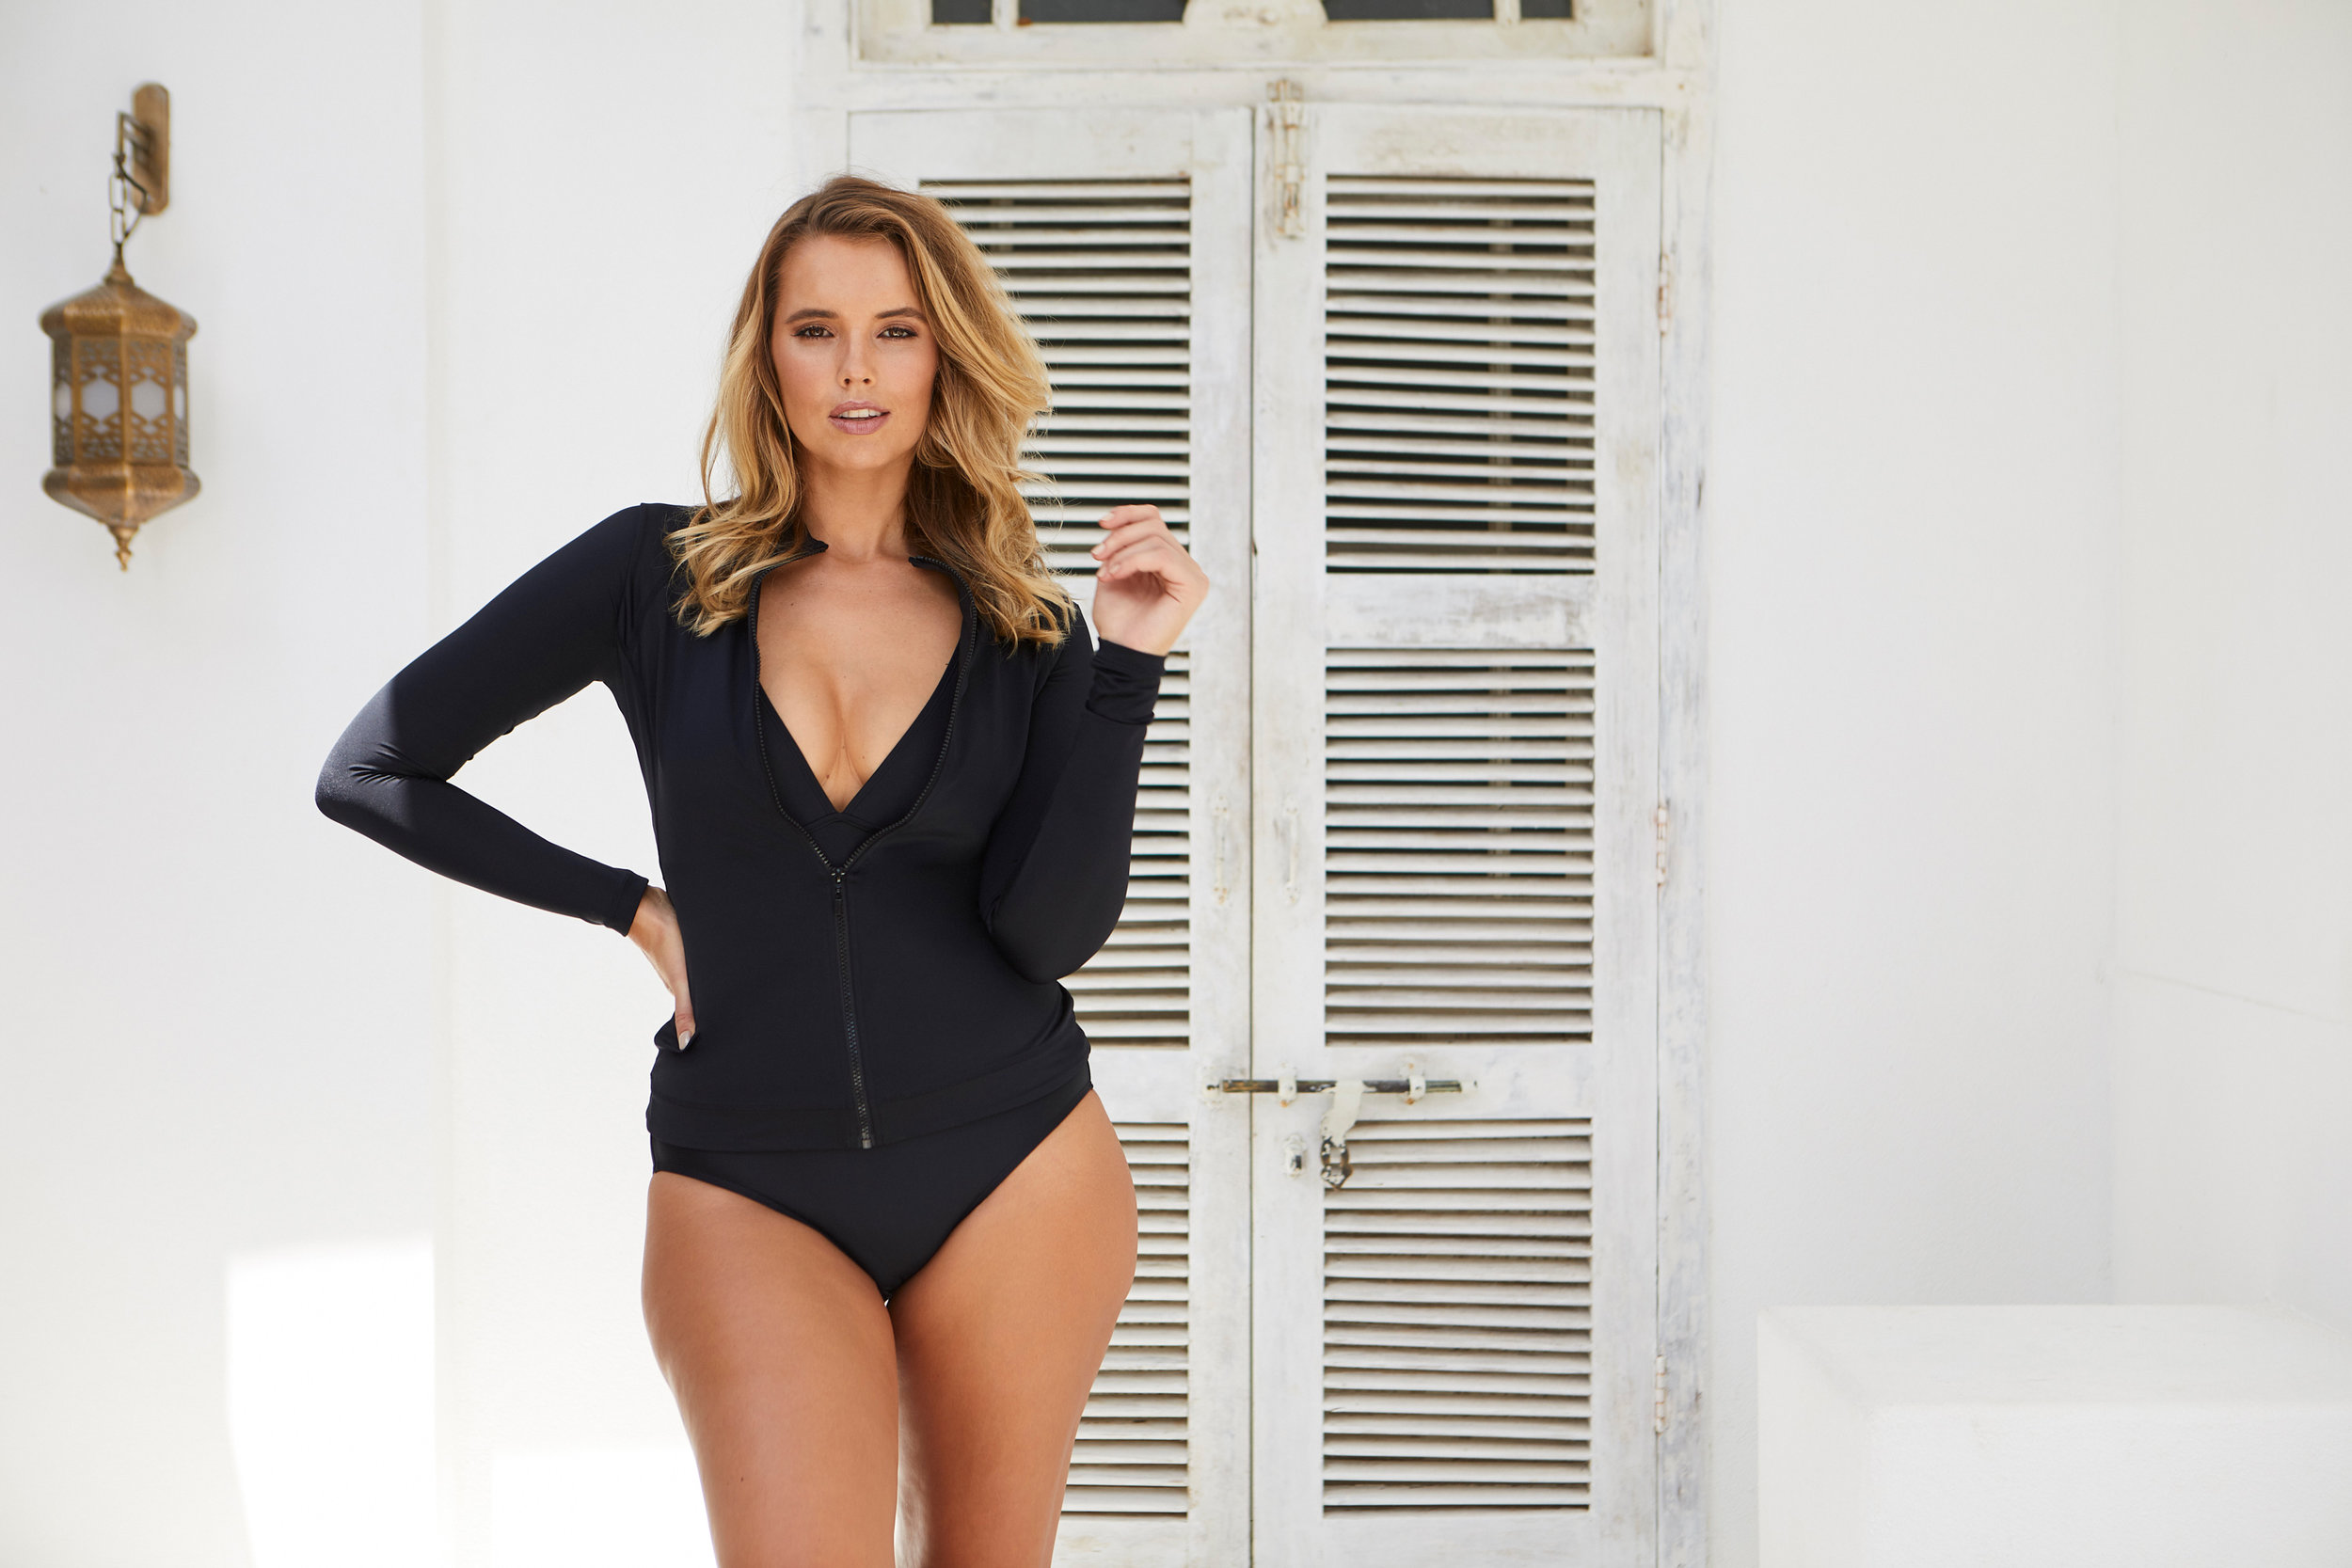 Bree wears the  Original Sexie Rashie Top, $175.00  over the Classic One Piece (coming soon).